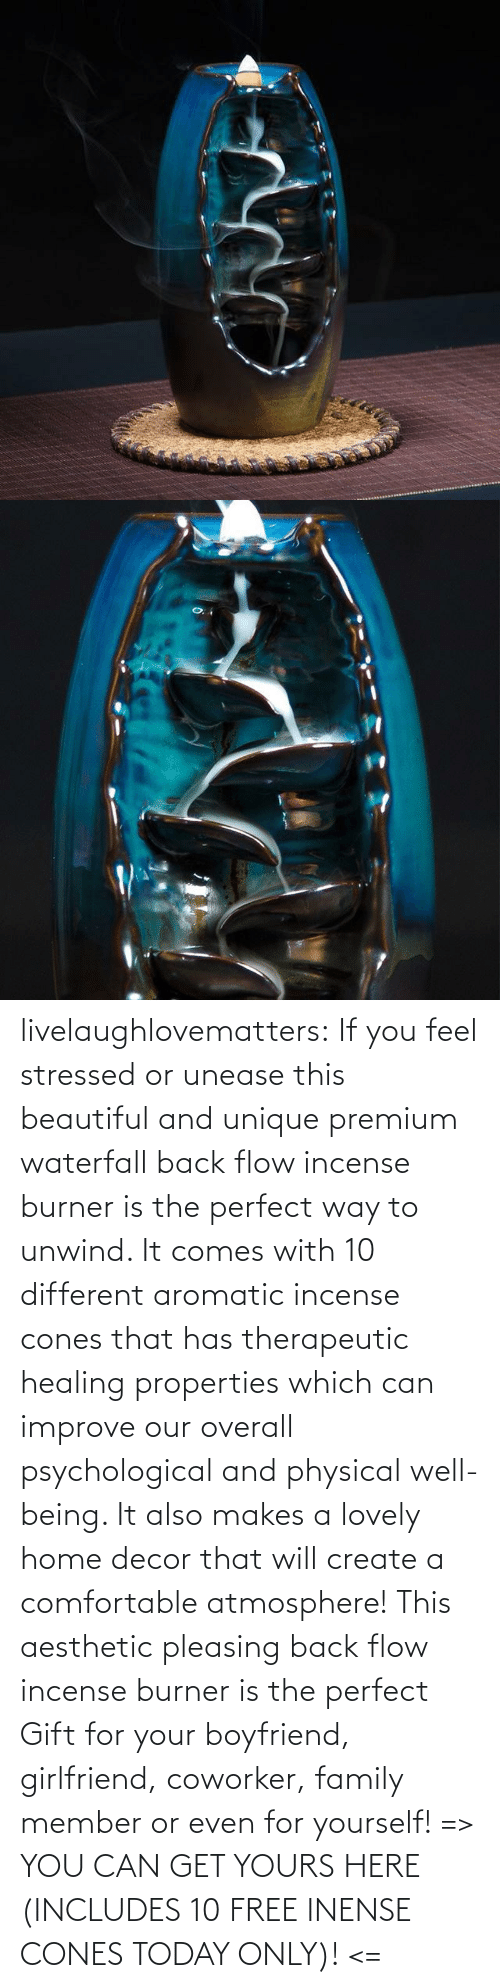 Boyfriend: livelaughlovematters: If you feel stressed or unease this beautiful and unique premium waterfall back flow incense burner is the perfect way to unwind. It comes with 10 different aromatic incense cones that has therapeutic healing properties which can improve our overall psychological and physical well-being. It also makes a lovely home decor that will create a comfortable atmosphere! This aesthetic pleasing back flow incense burner is the perfect Gift for your boyfriend, girlfriend, coworker, family member or even for yourself! => YOU CAN GET YOURS HERE (INCLUDES 10 FREE INENSE CONES TODAY ONLY)! <=